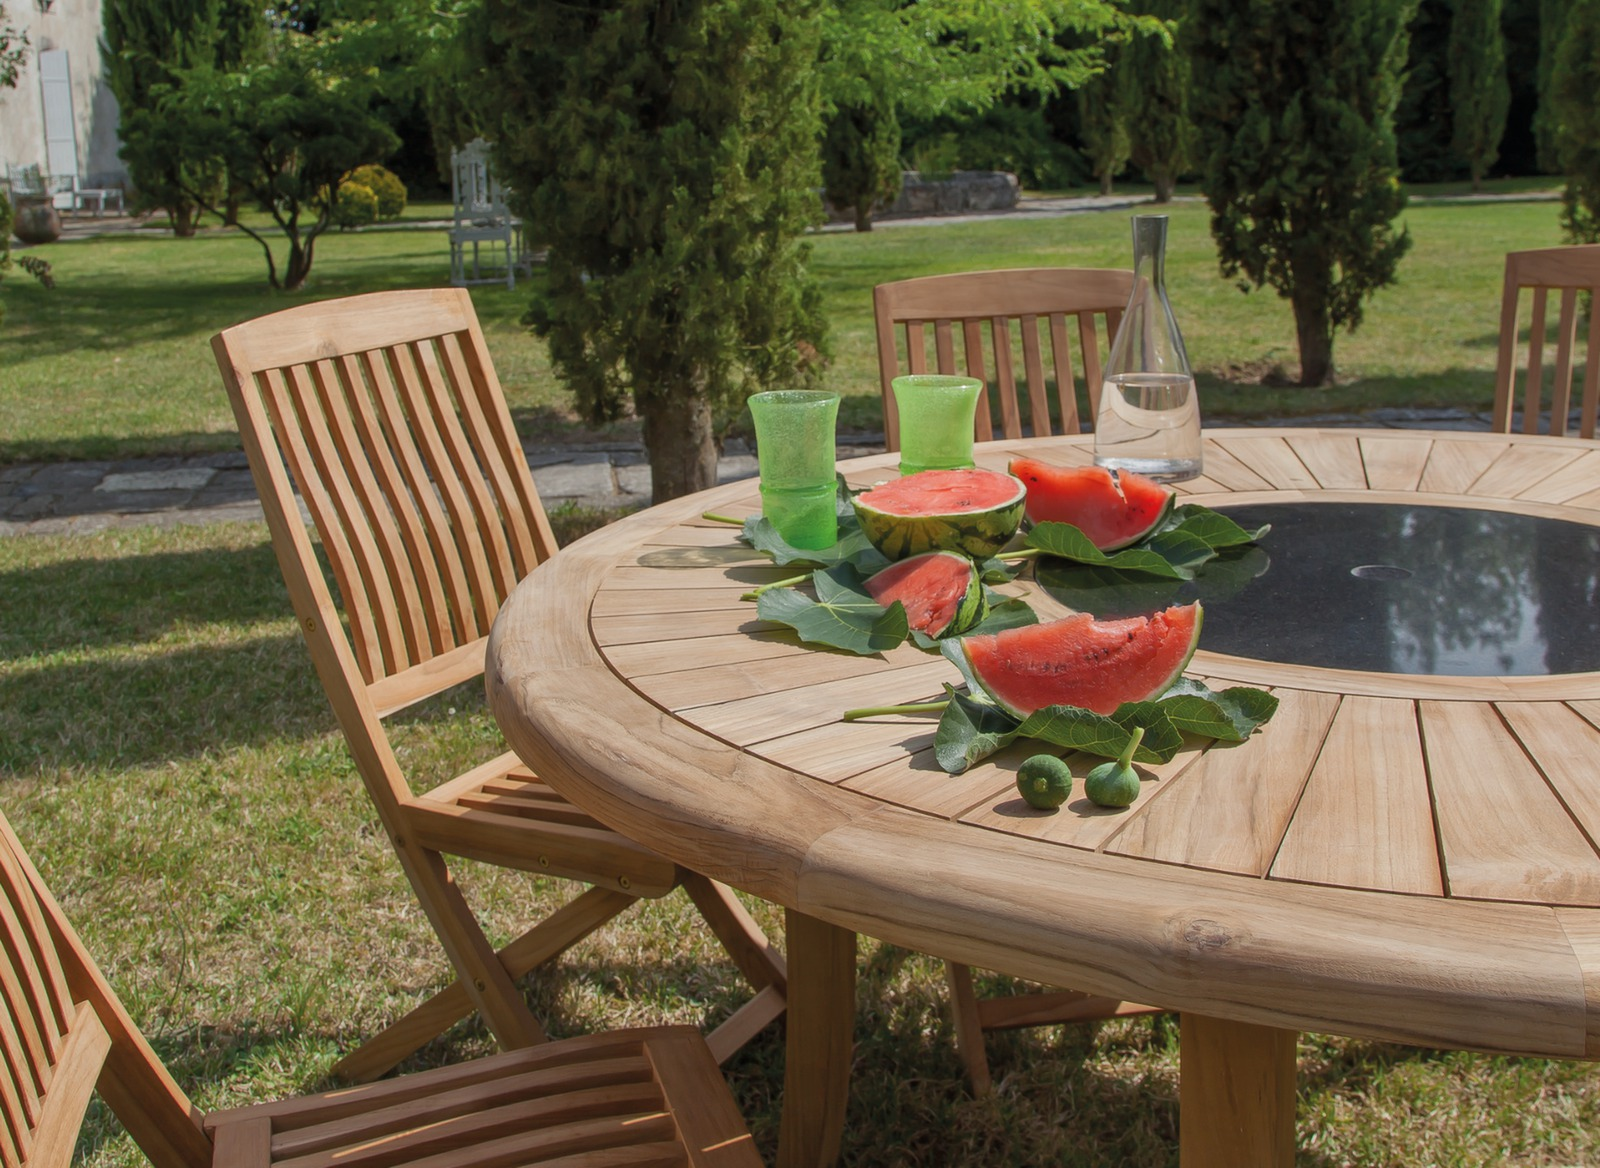 Salon jardin table ronde br hat 6 chaises proloisirs for Table ronde avec 6 chaises